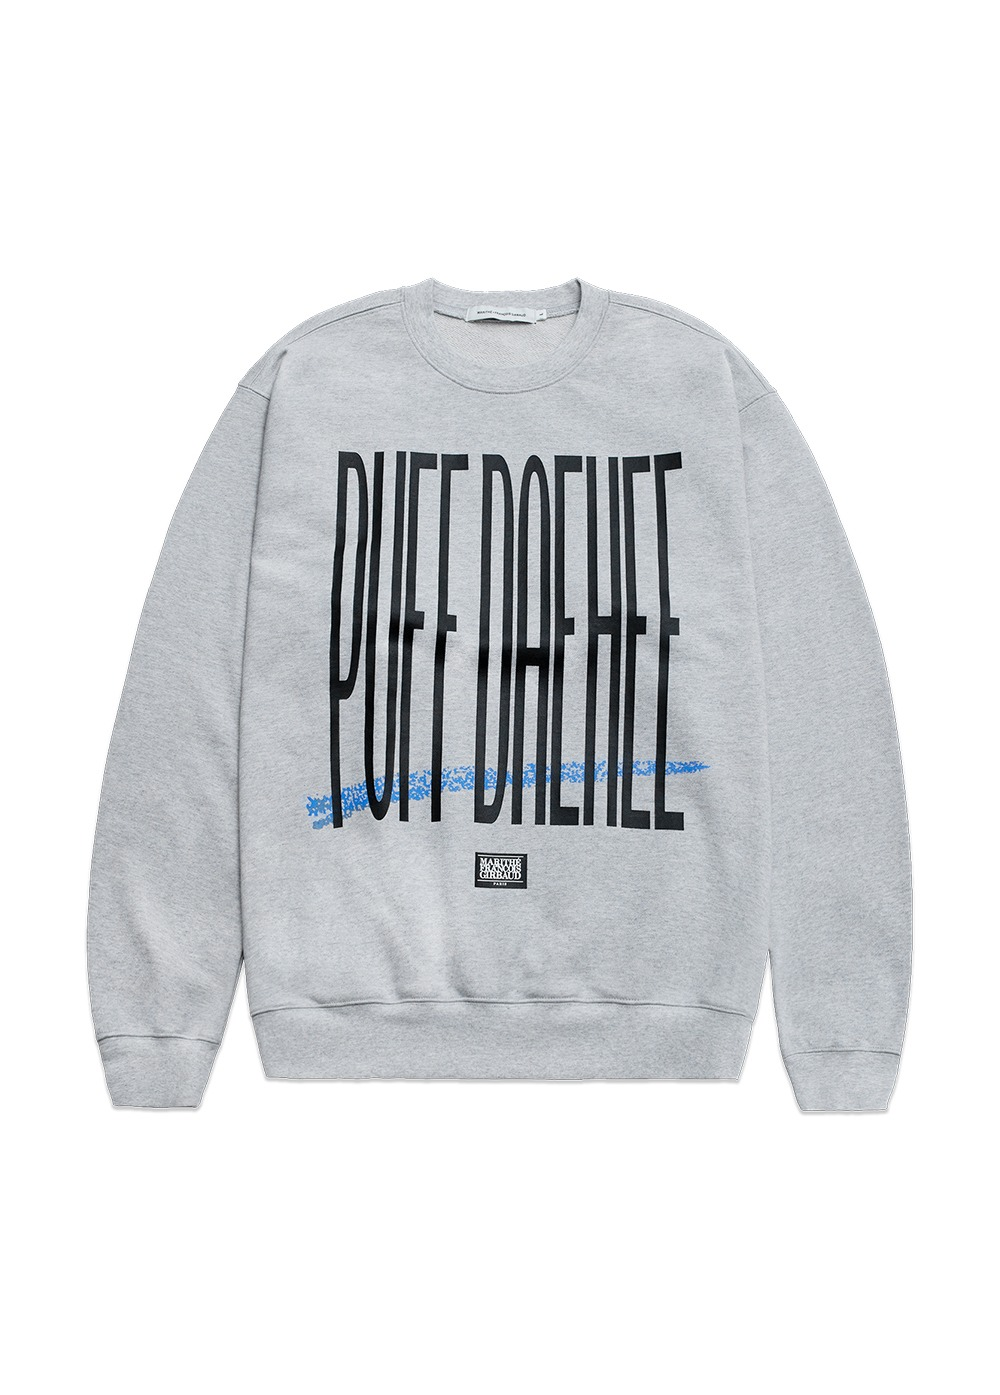 MFG X 8BALLTOWN PUFF DAEHEE SWEATSHIRT heather gray